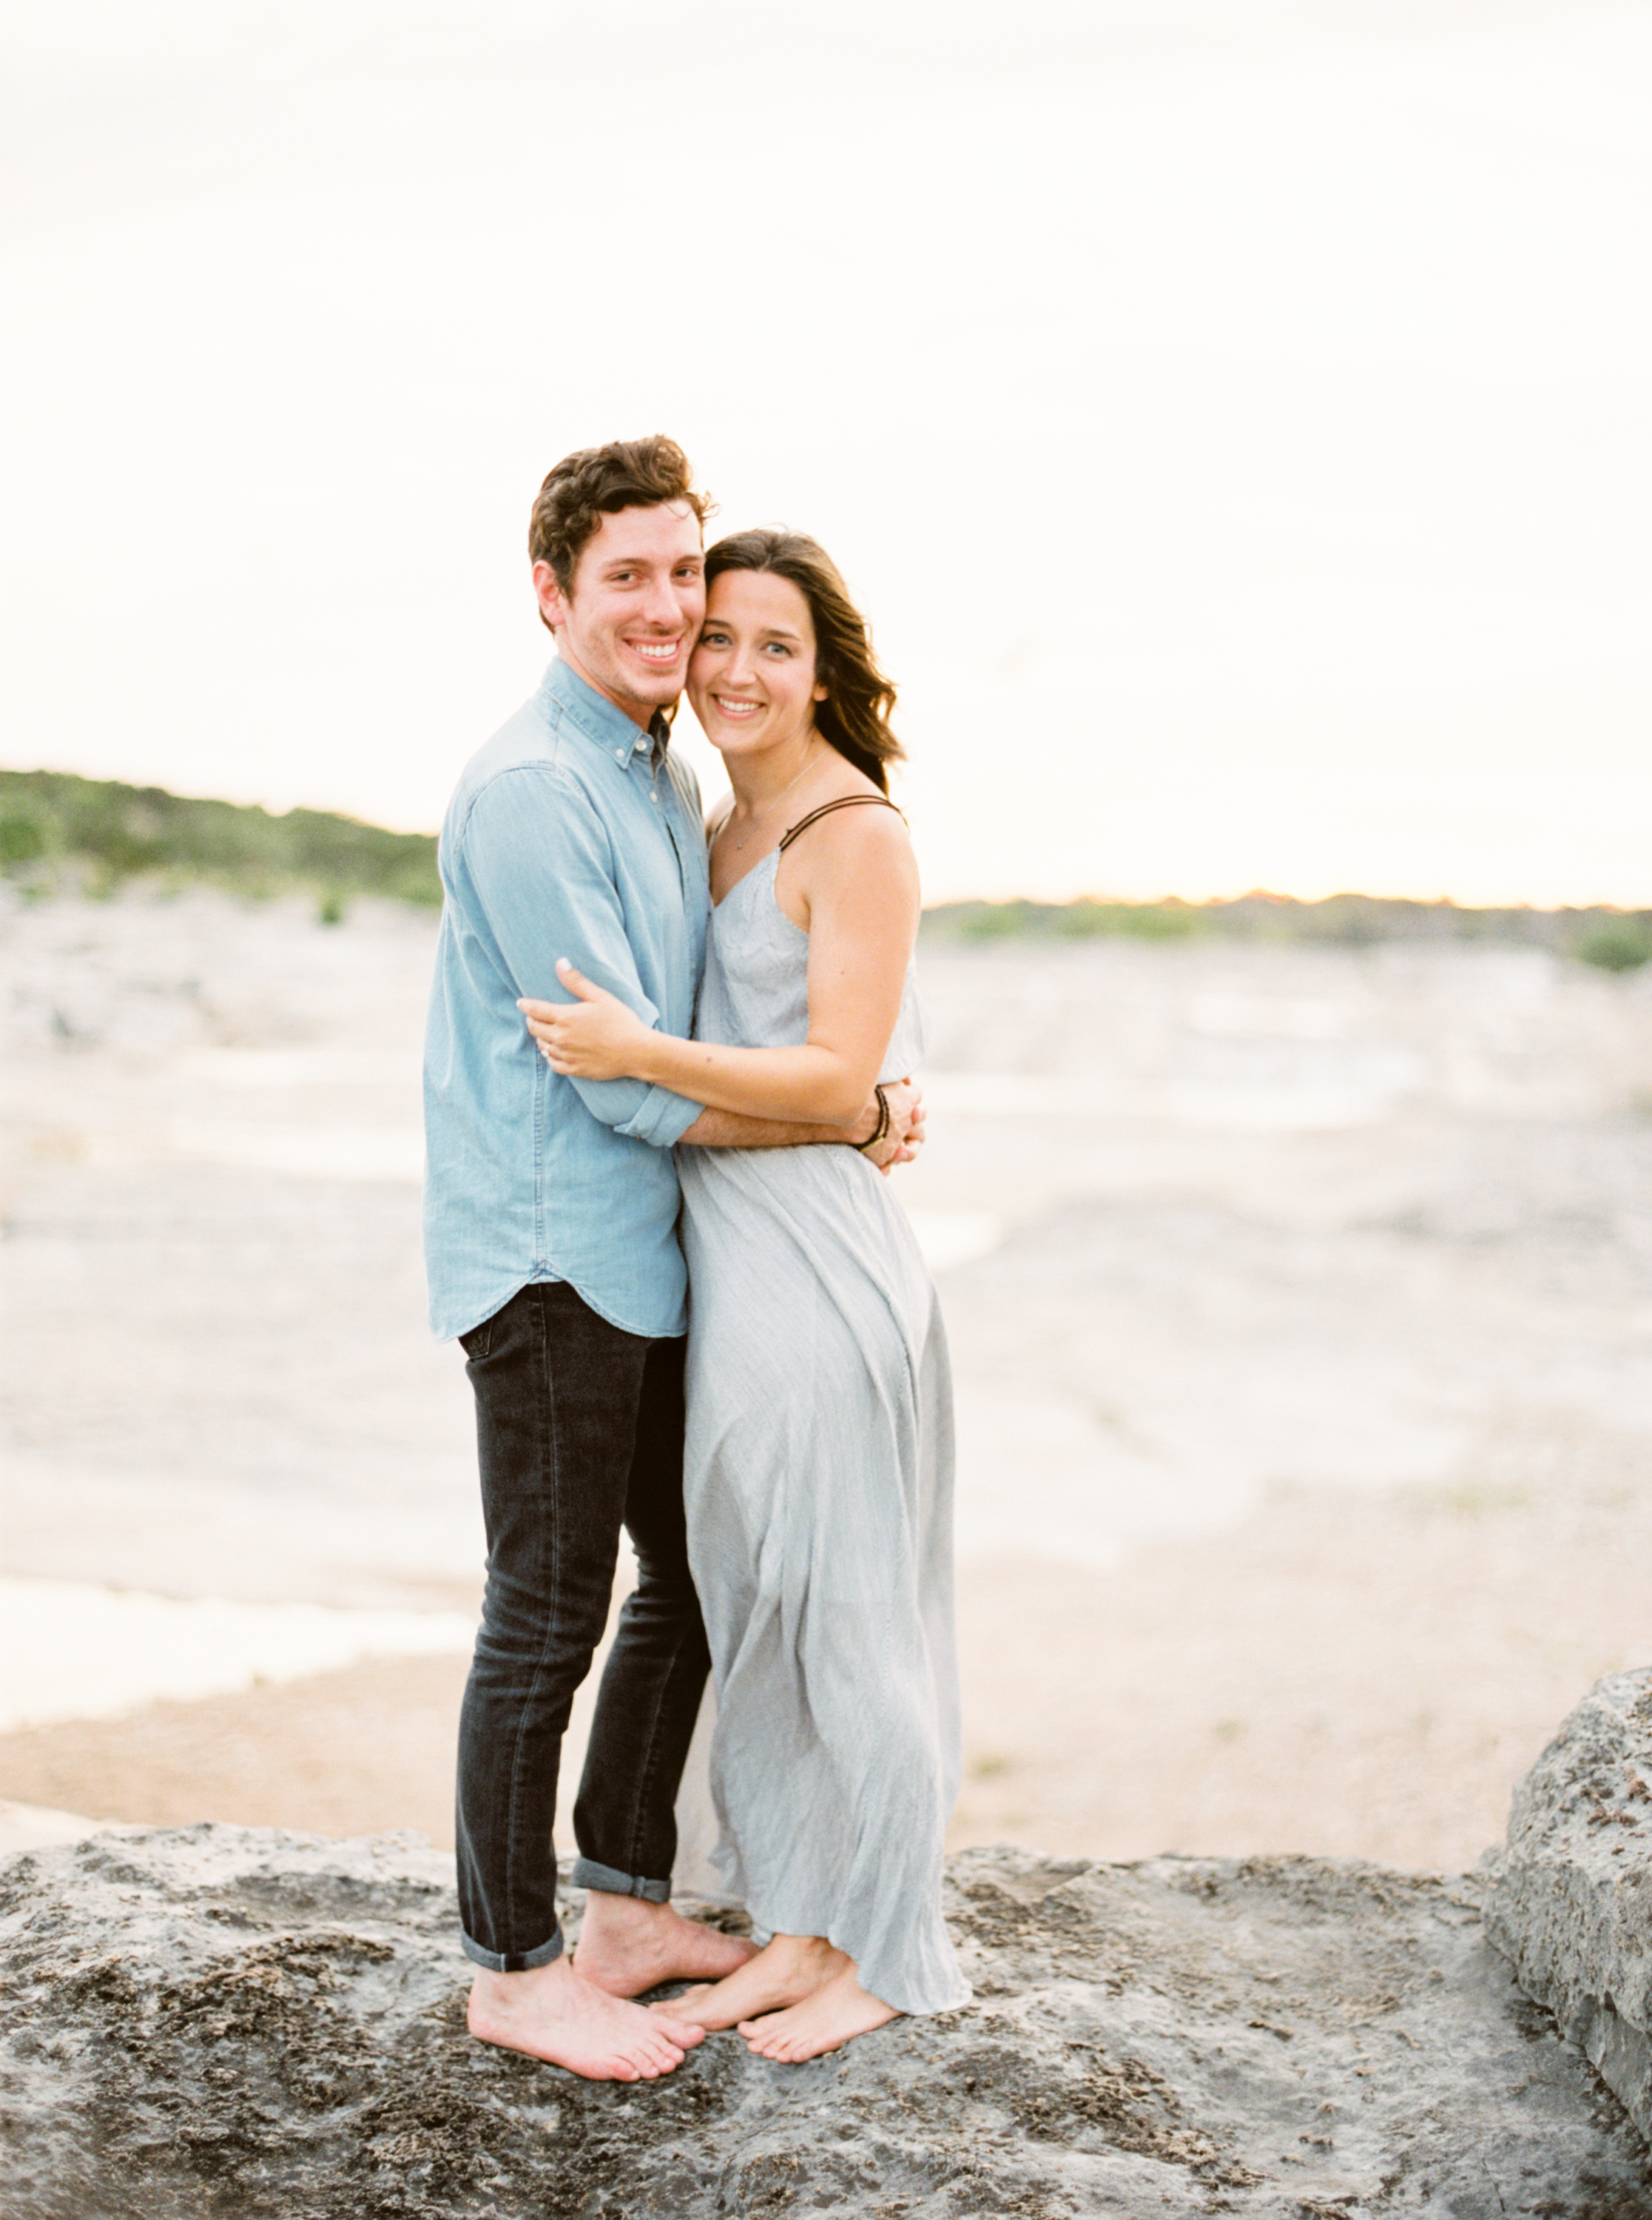 Engagement Session Outfits-23.jpg